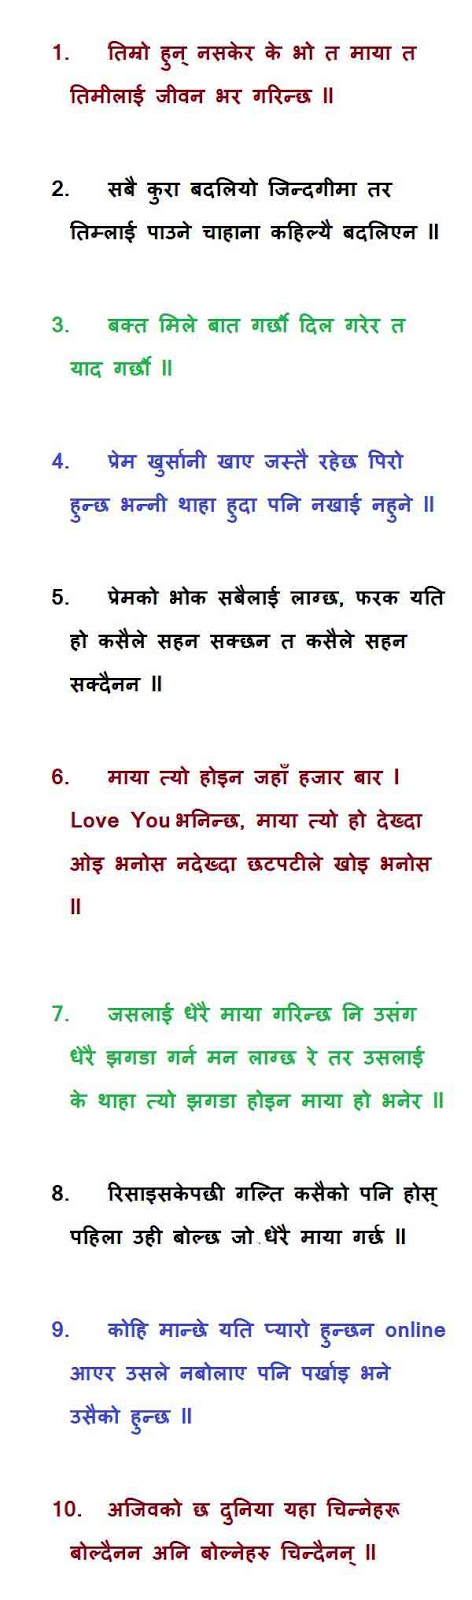 Funny Caption In Nepali : funny, caption, nepali, Short, Funny, Quotes, Nepali, Manny, Quote